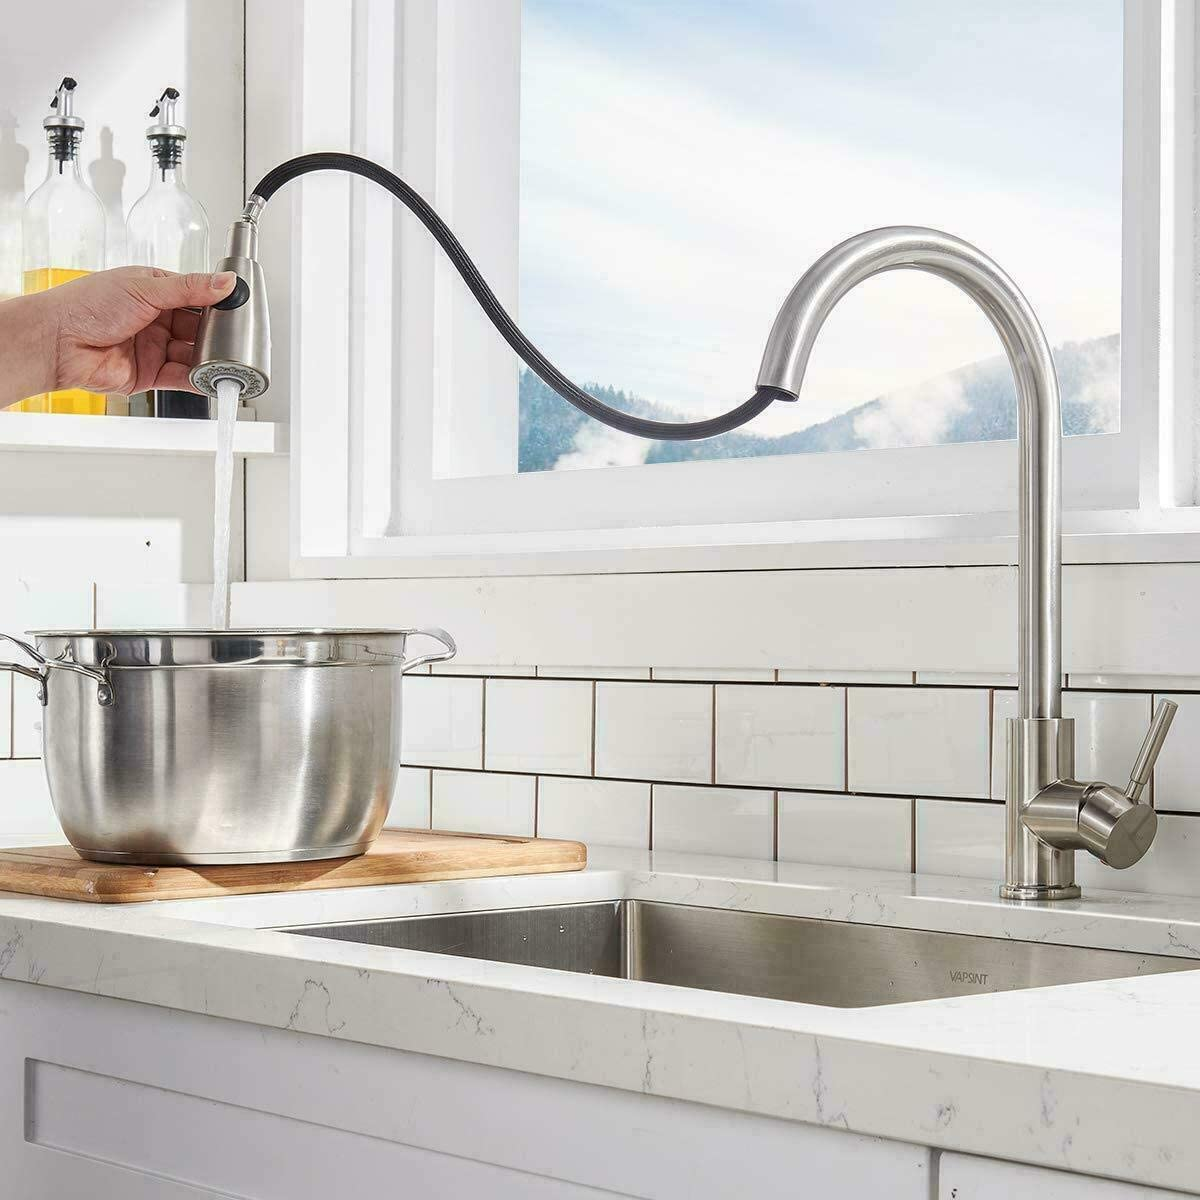 Stainless Steel Sink Spray U-BCOO Pull-Down Kitchen Faucet Replacement Hose